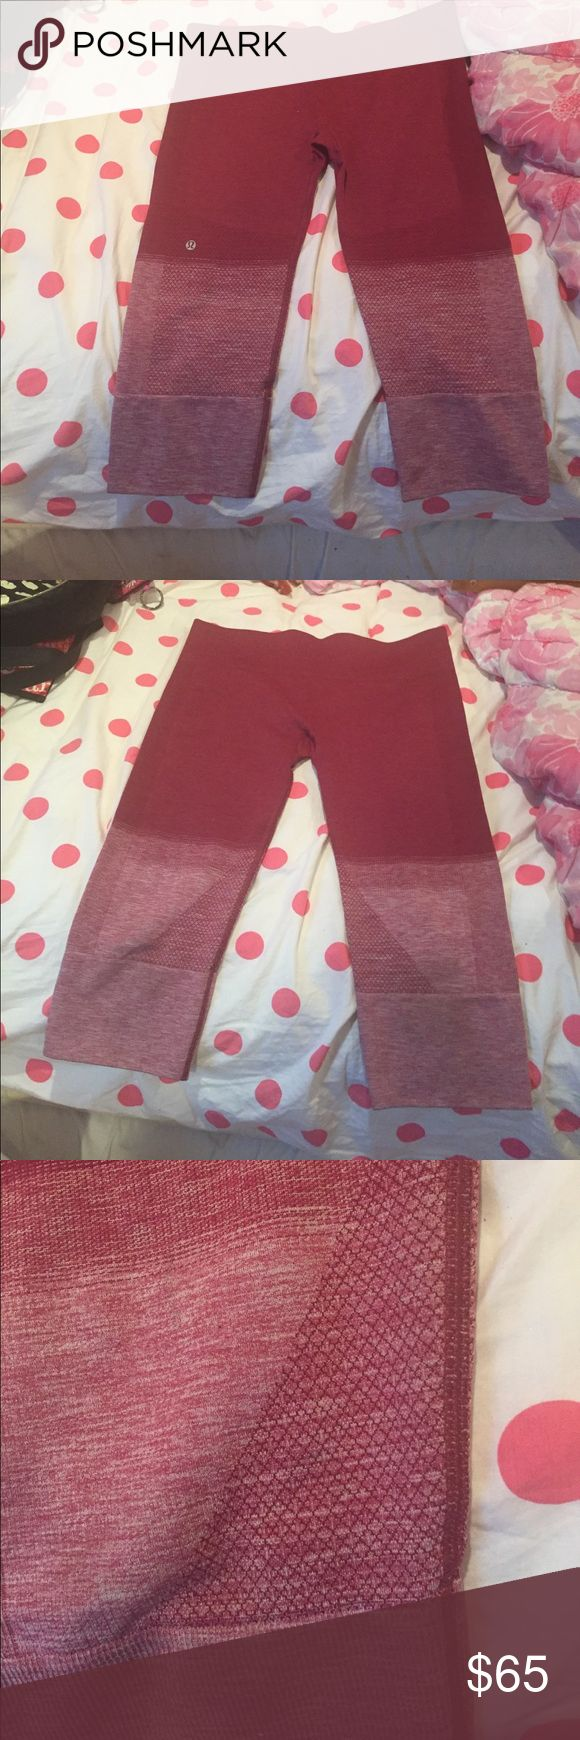 Lululemon Capri maroon leggings Capri leggings worn once in great condition! Make me an offer. Missing the inside tag lululemon athletica Pants